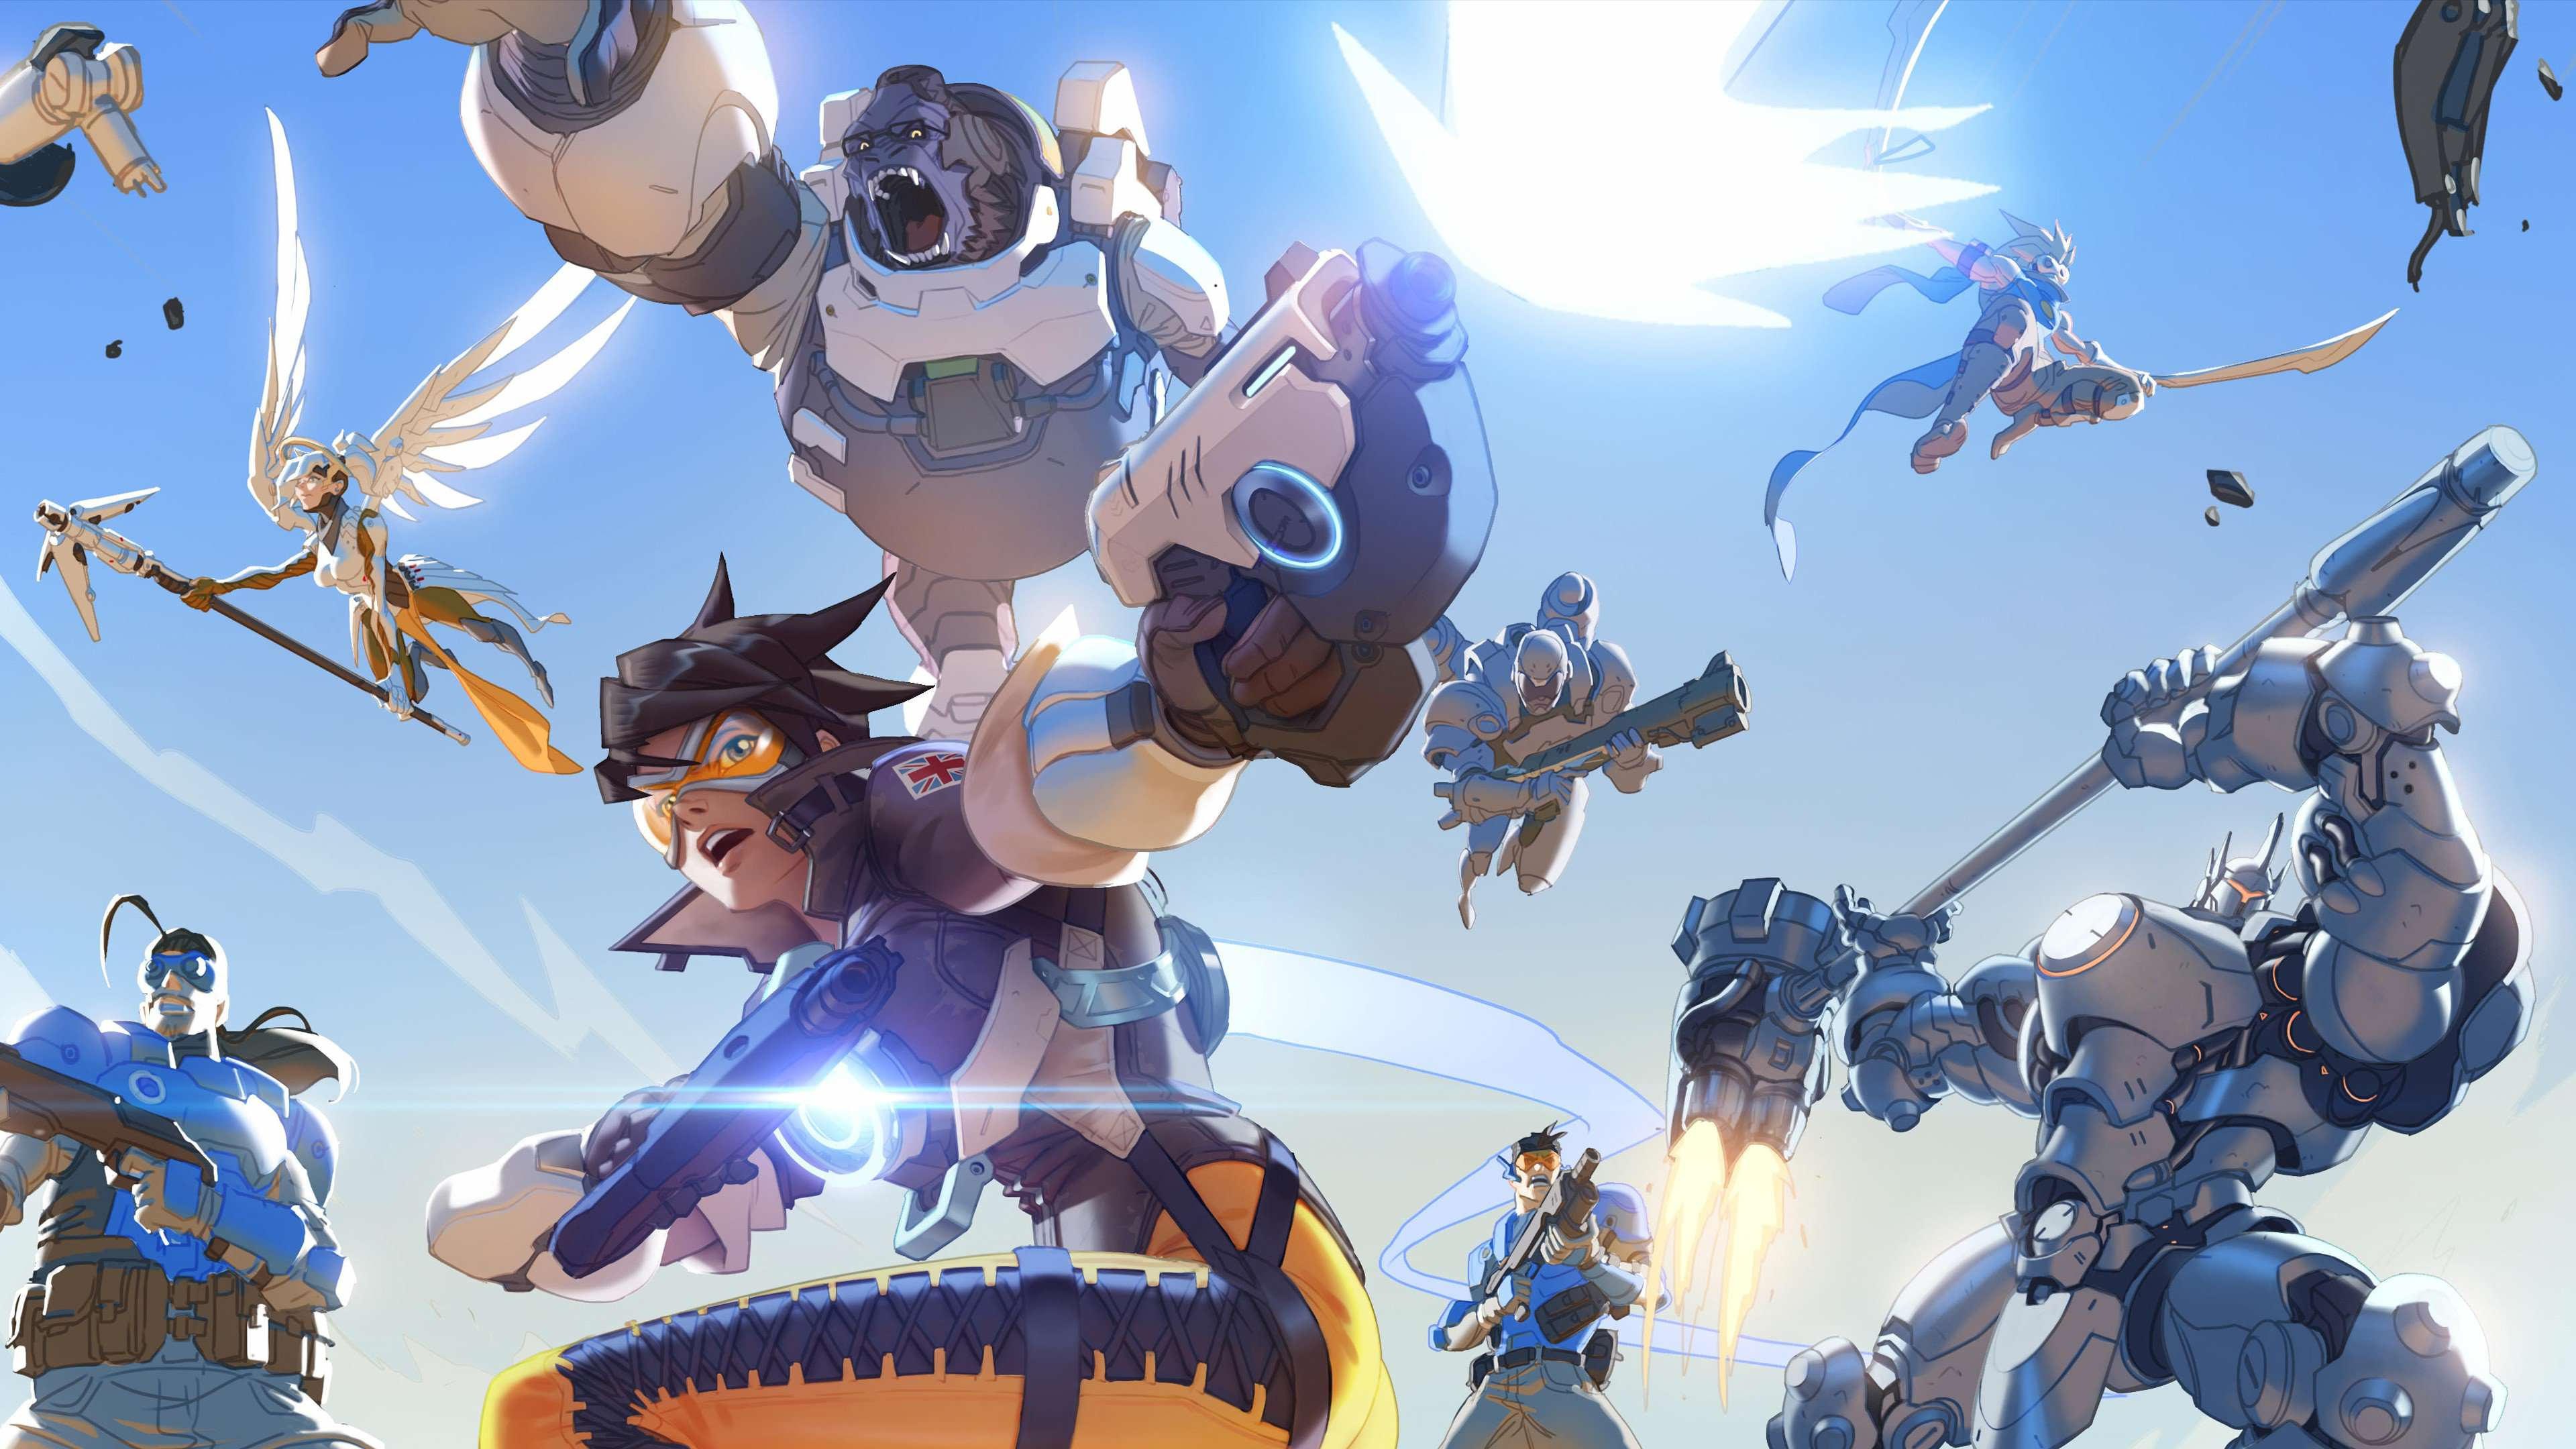 Blizzard Planning To Nerf Key Overwatch Character OW